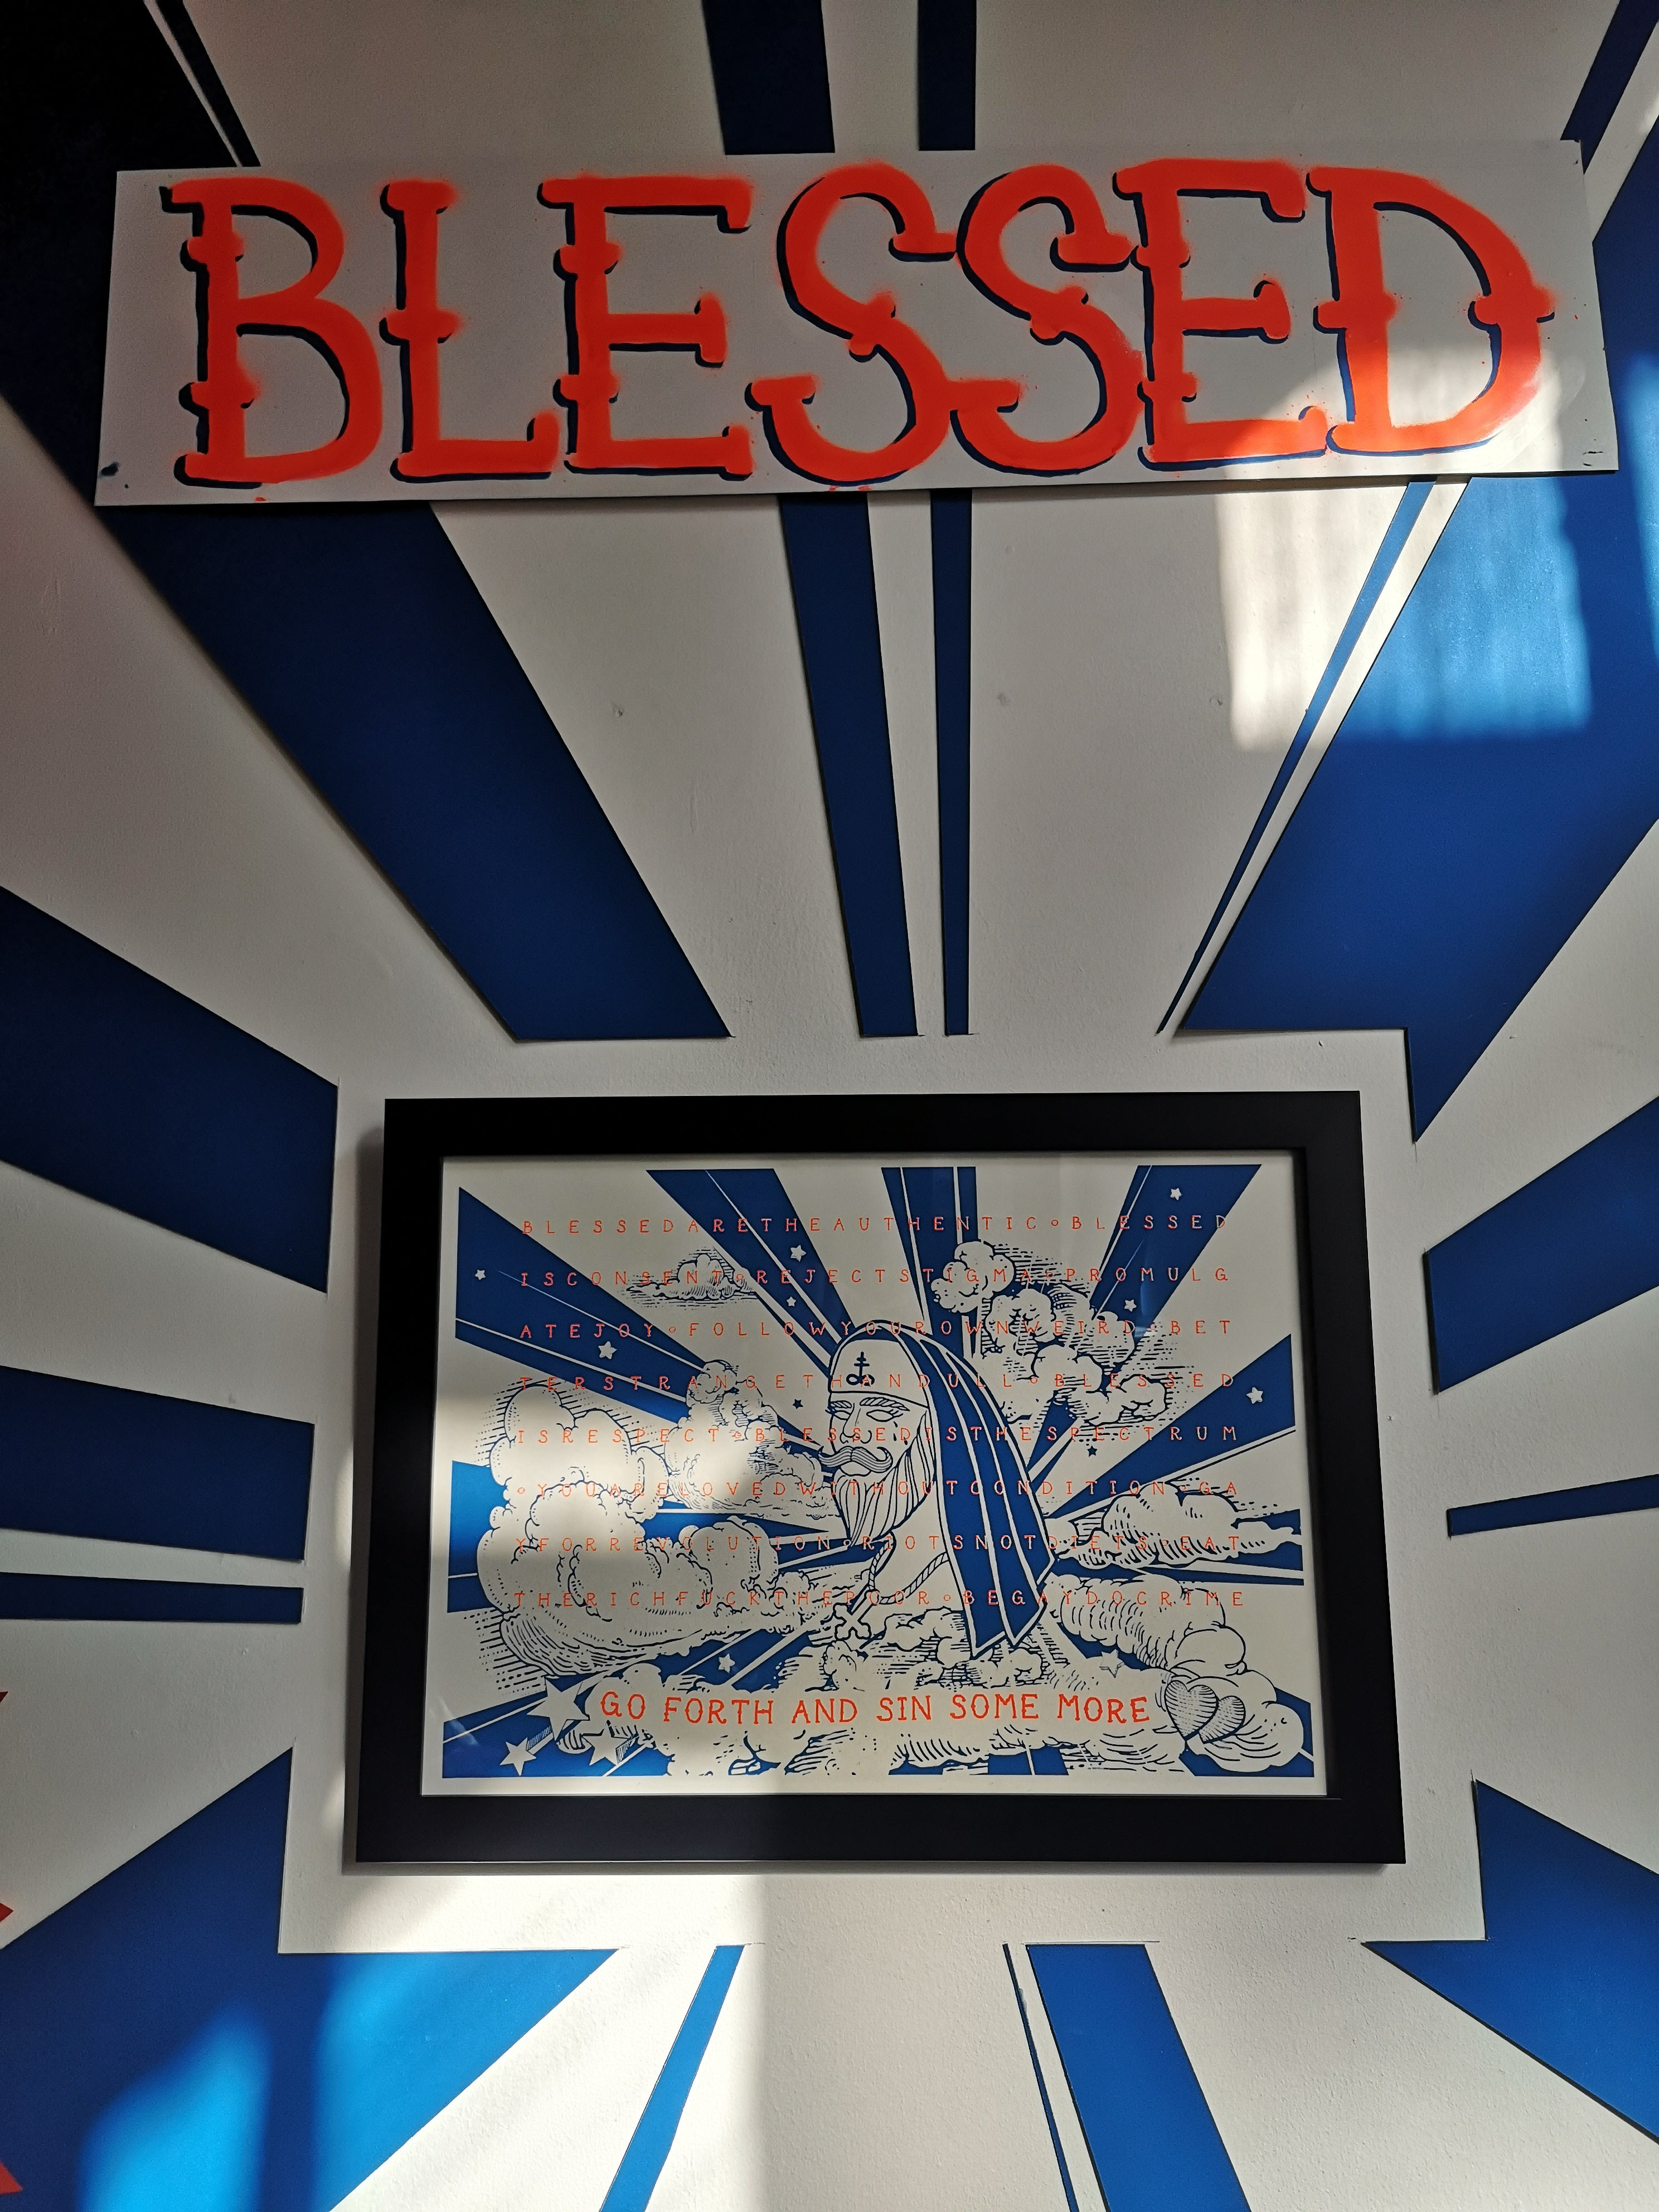 Blessed - A3 Screen Print